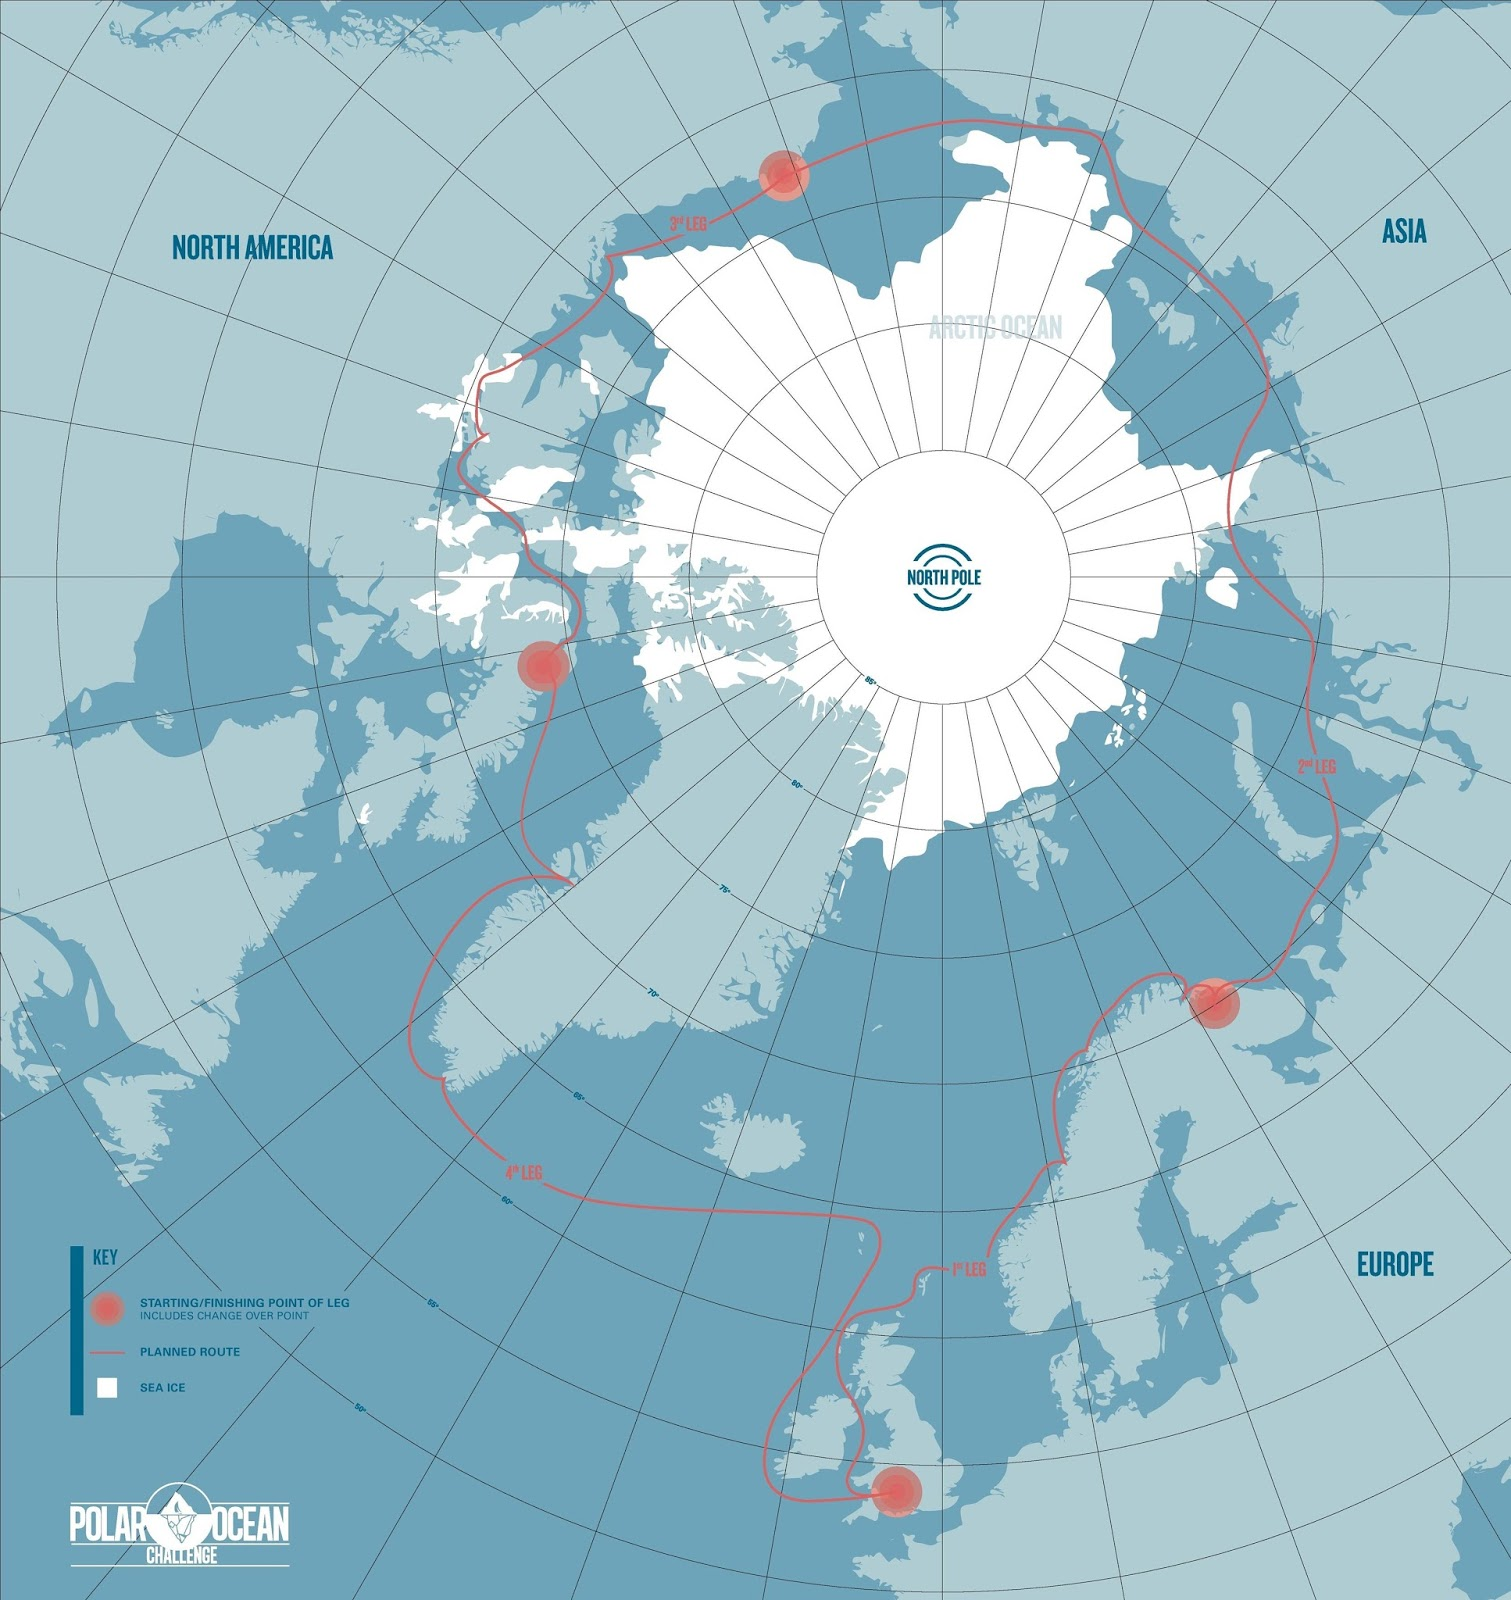 Key Map Of The Arctic Circle on map of the scandinavia, map of the us including the arctic region, map of the moon circle, map of the grand circle, map of alaska, map of the prime meridian, map of the red sea, map of tropic of cancer, map of canada, map of mexico, map of tropic of capricorn, map of africa, antarctic circle, map of the arctic ocean, map of antarctica, map of north america, map of norway, map of the indian ocean, map of central america, map of europe,